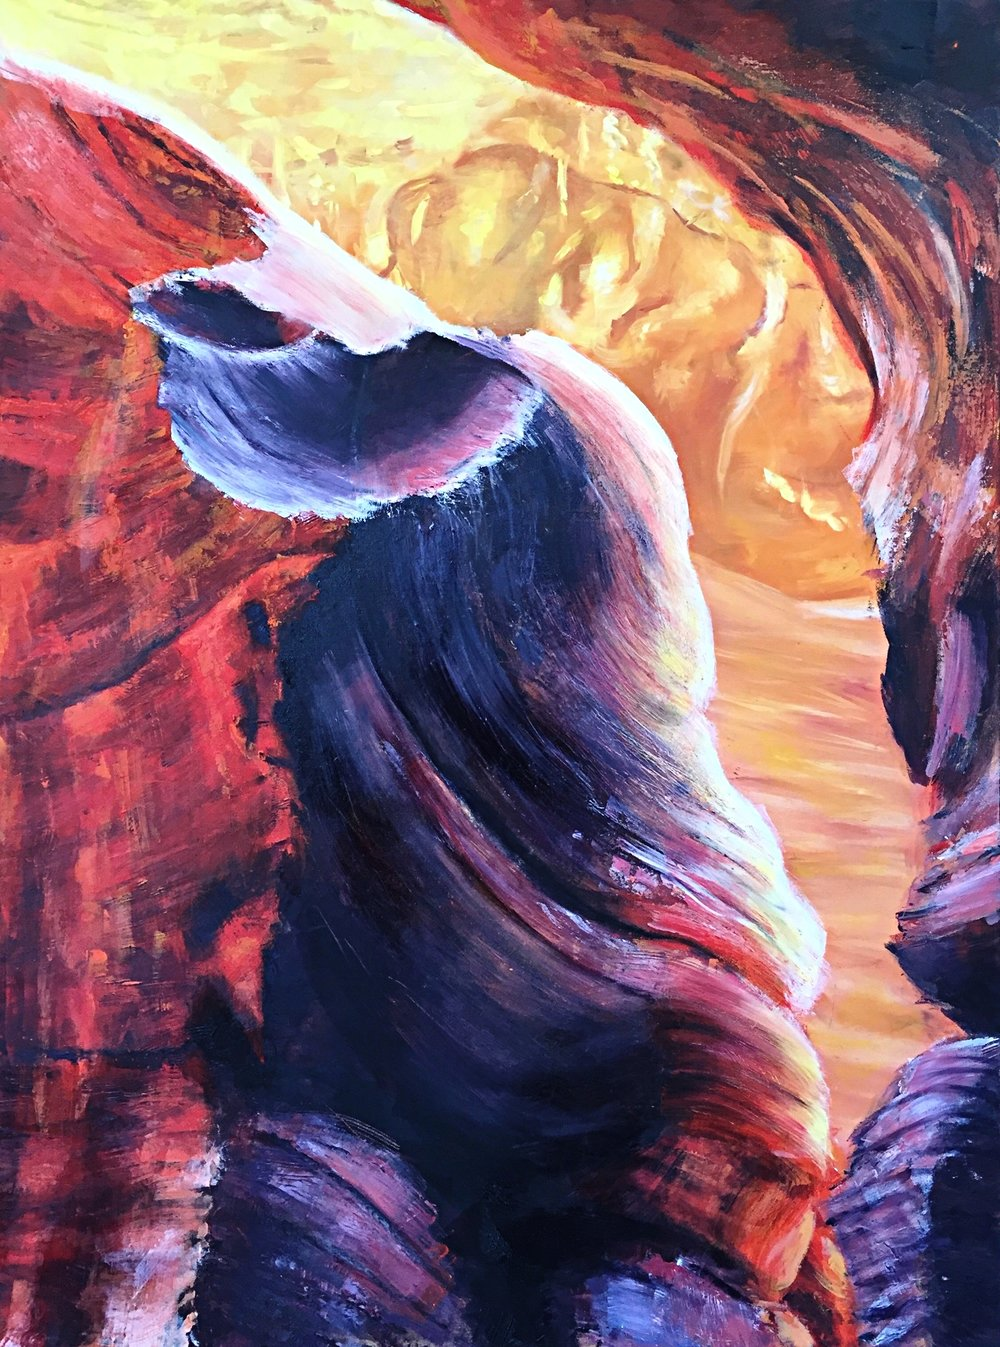 ANTELOPE CANYON, oil on canvas, 36 x 48 inches, 2016